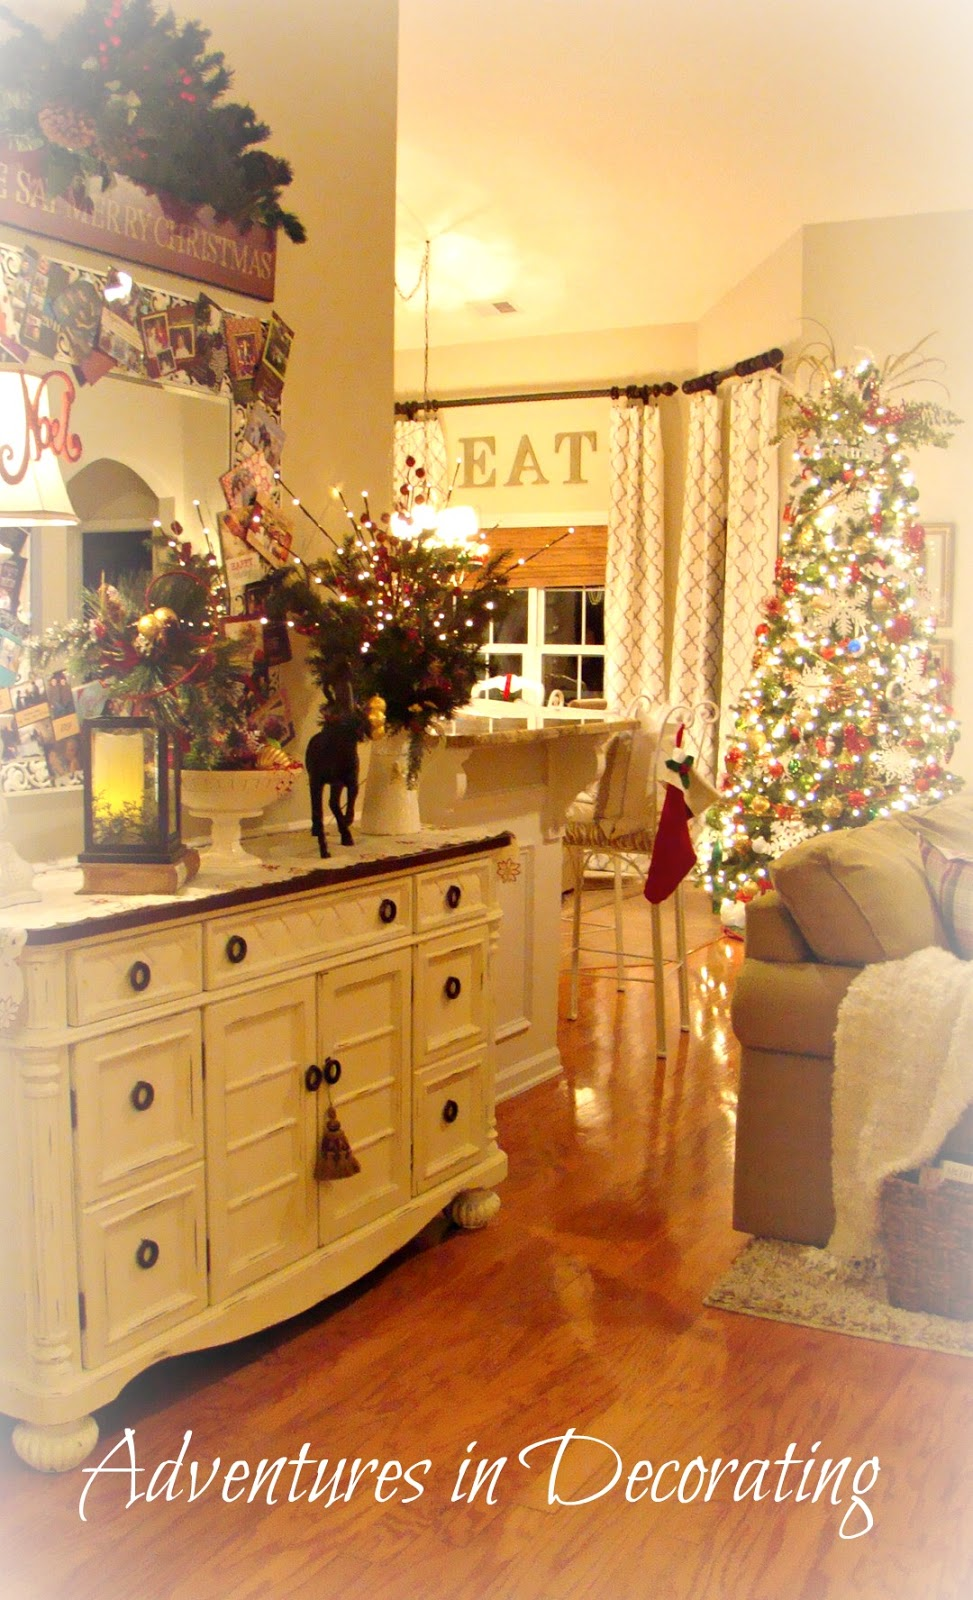 Decorating Great Room Living Area: Adventures In Decorating: Christmas In The Great Room